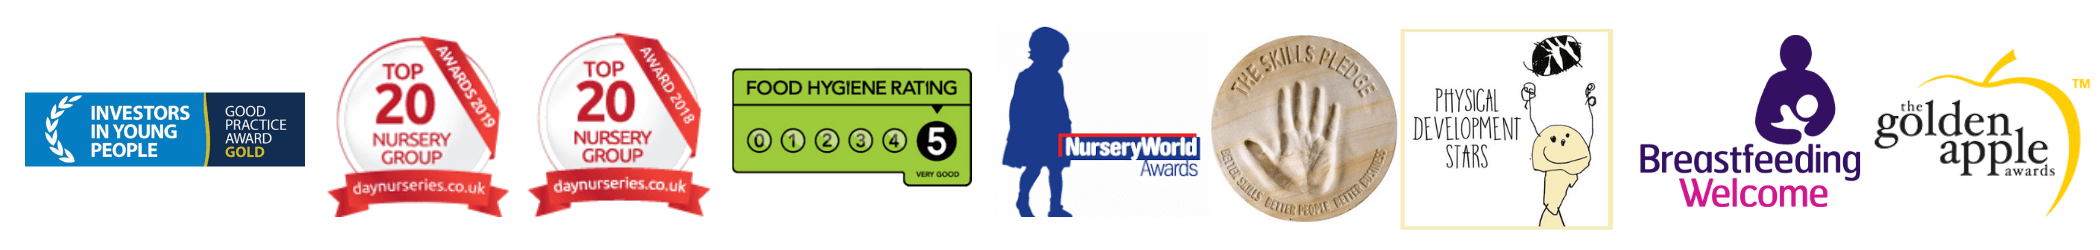 Holyrood Nursery Prestwich Awards